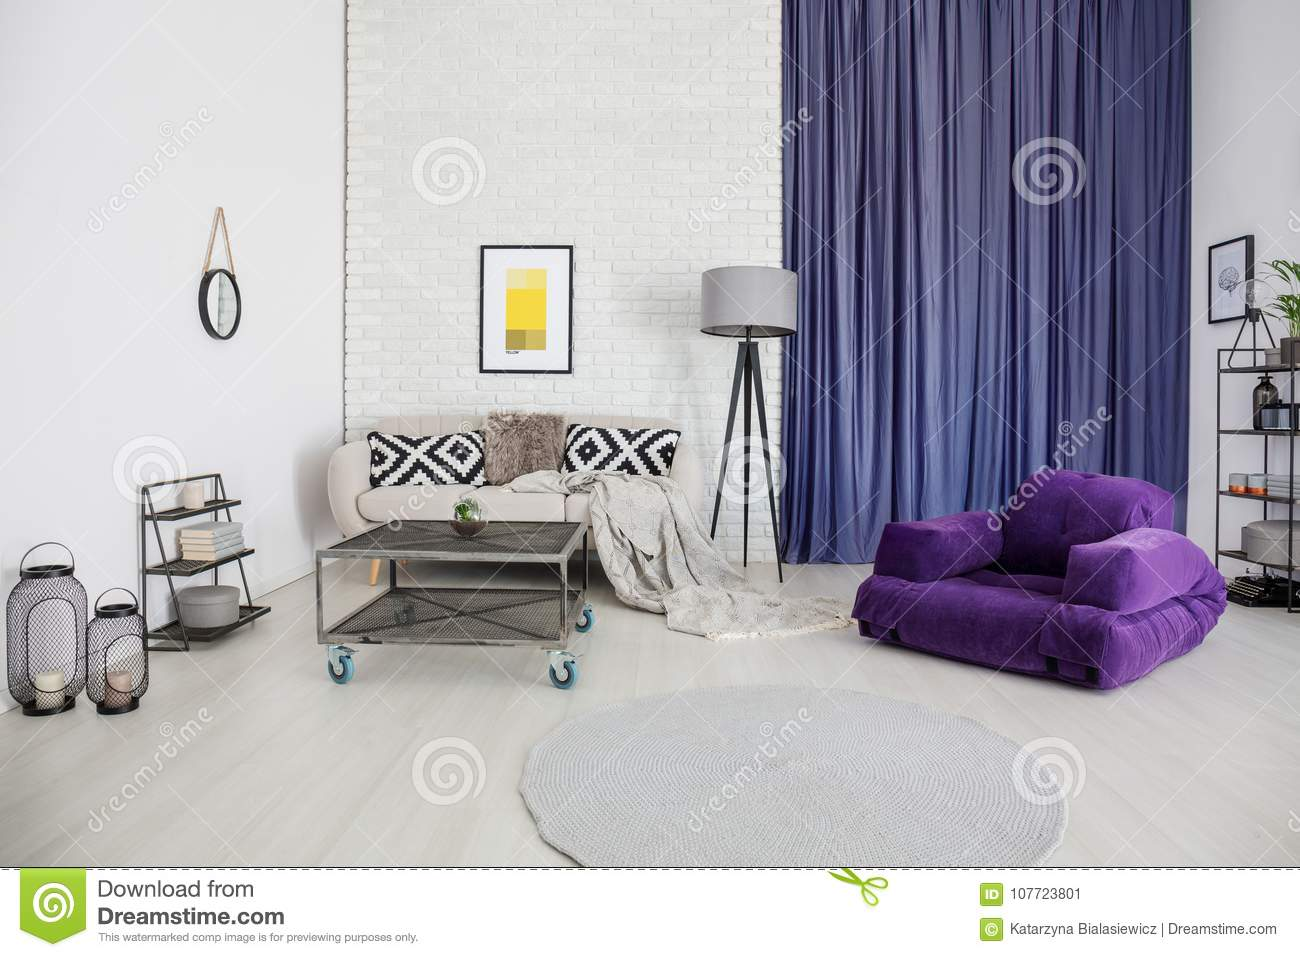 Living Room With Purple Accents Stock Image - Image of furniture ...